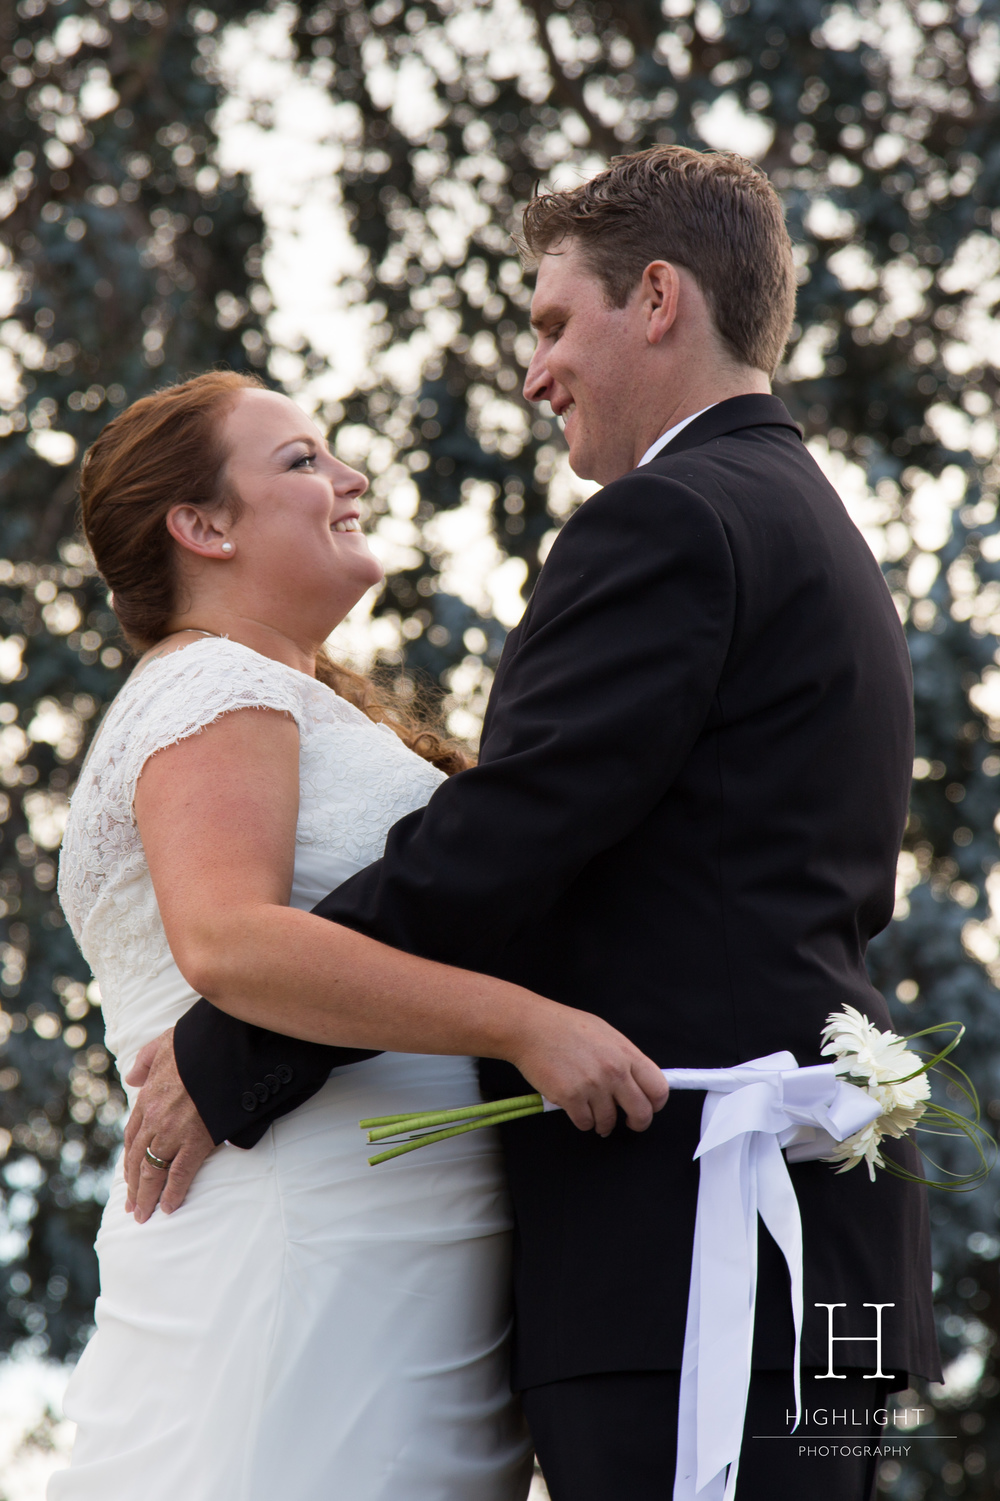 highlight_wedding_photography-palmerston-north_copthorne_masterton.jpg